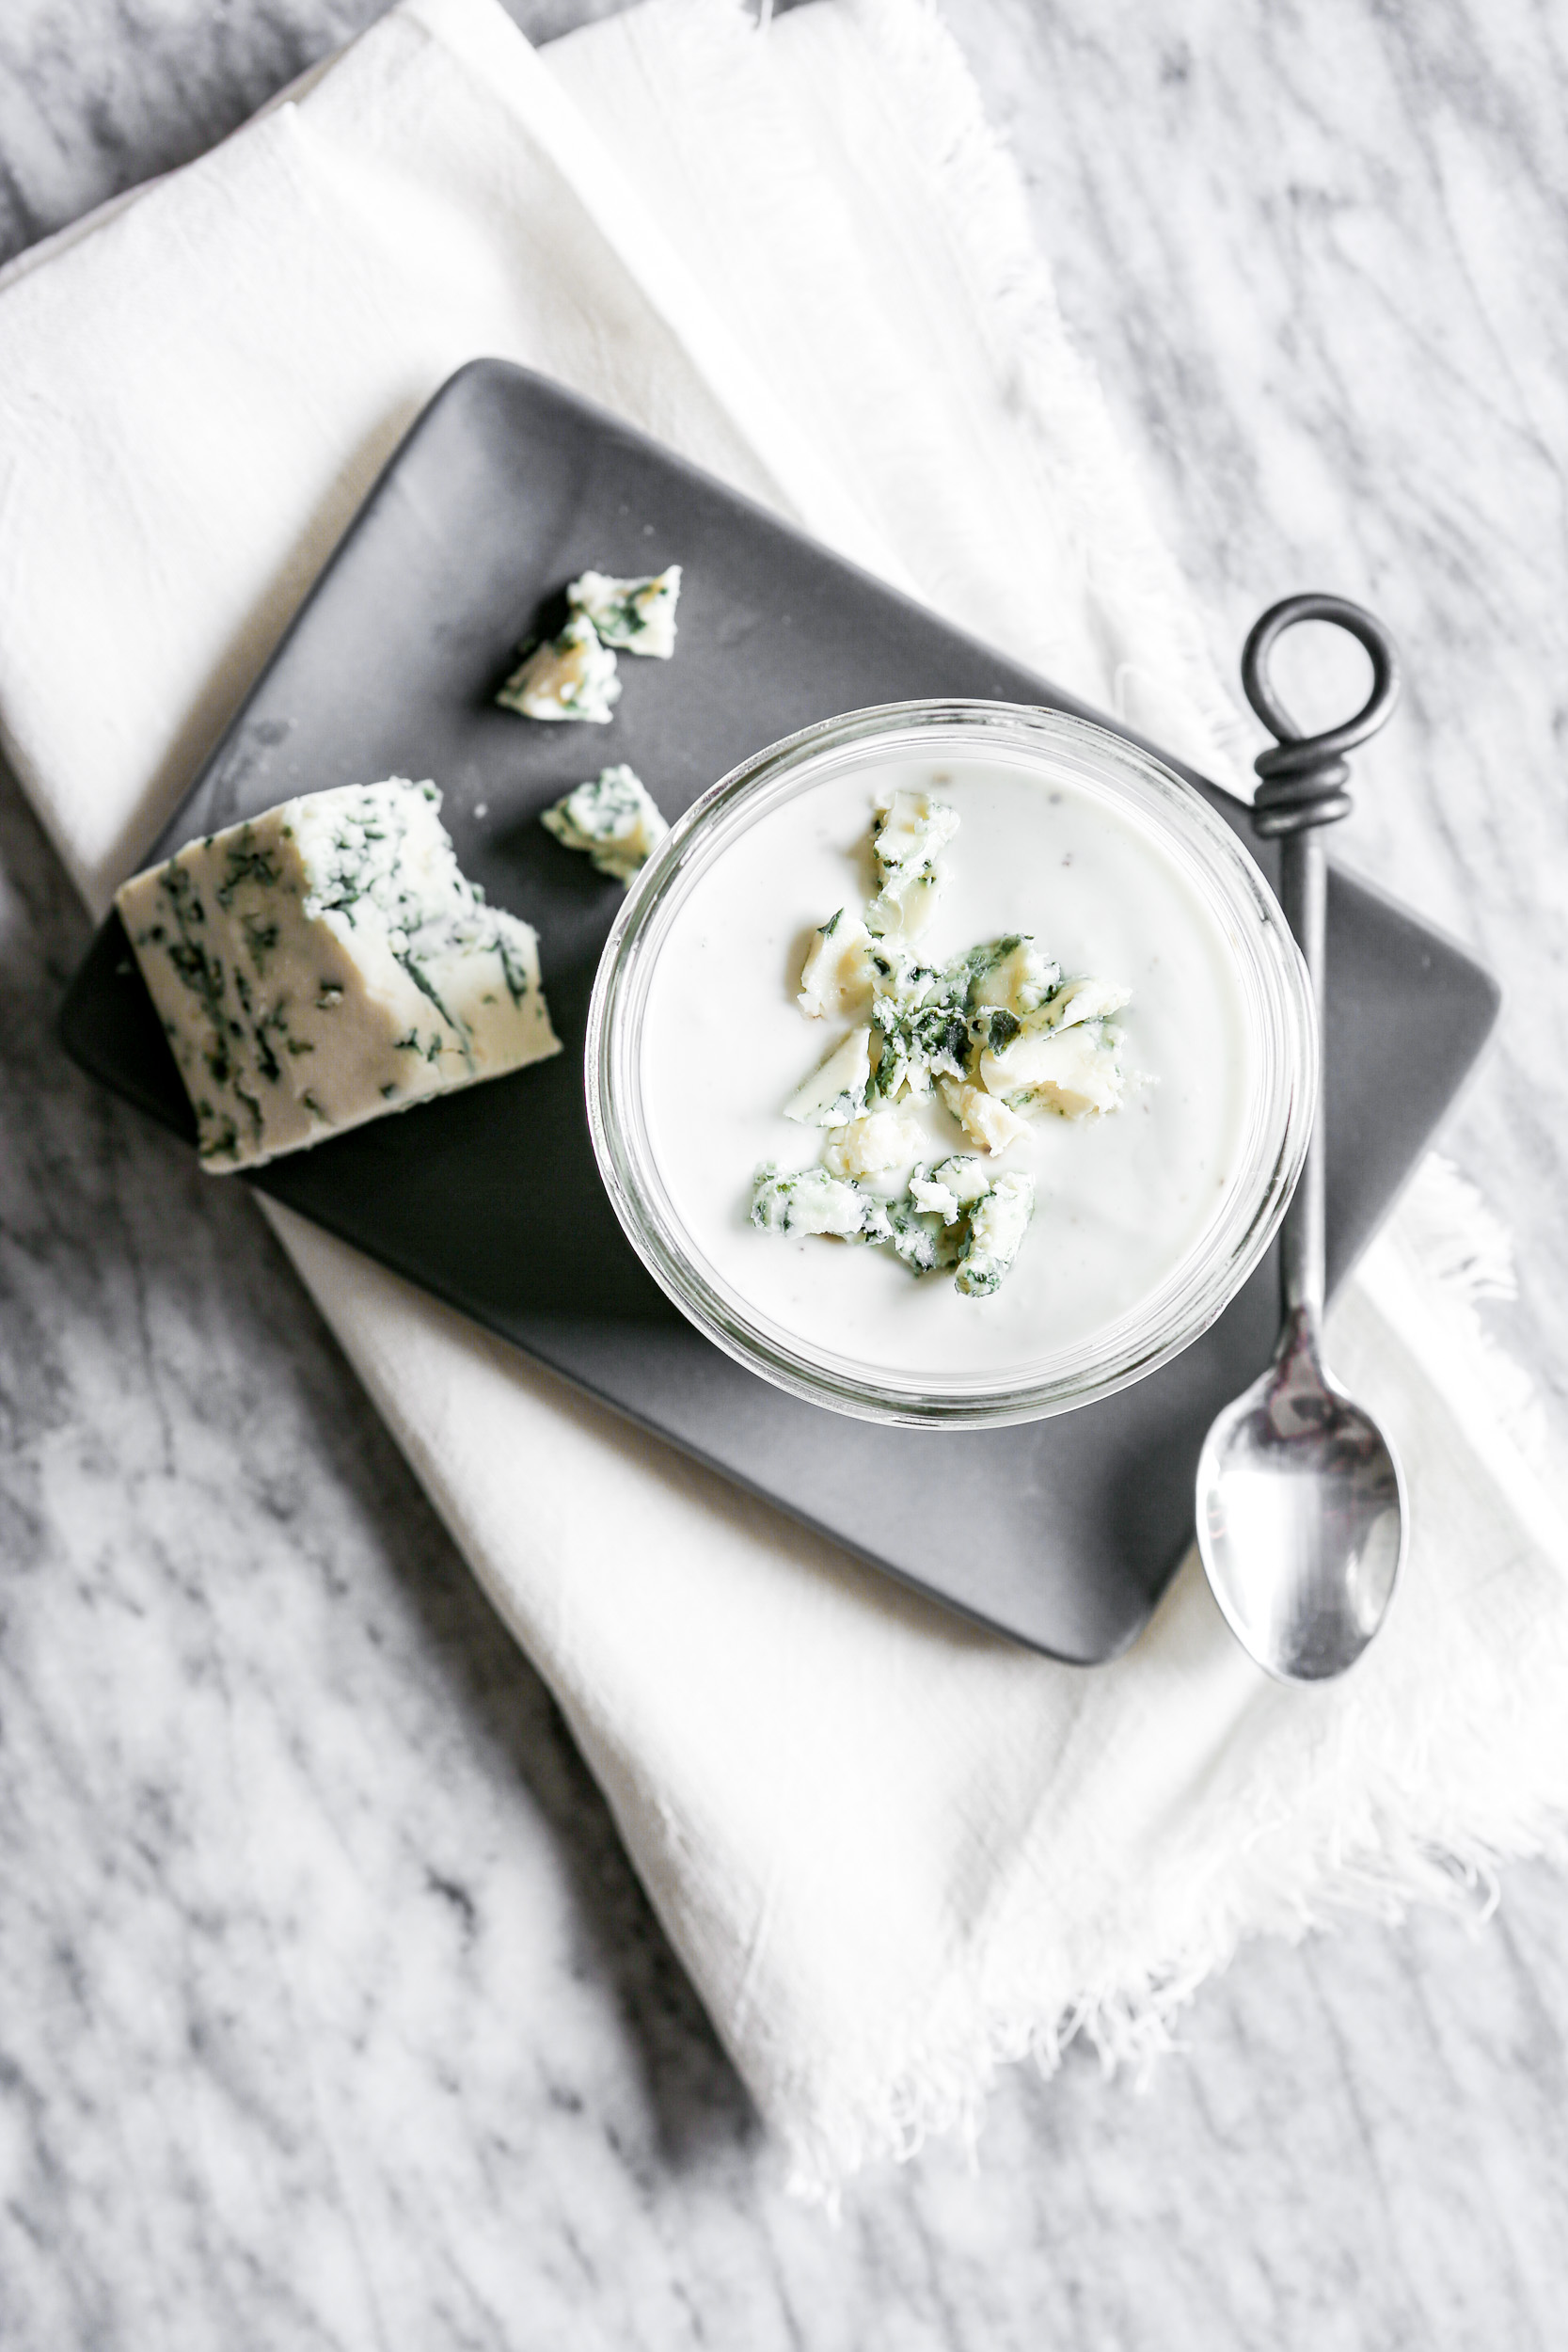 Overhead photograph of blue cheese salad dressing in a glass jar set on a gray plate on a marble table.